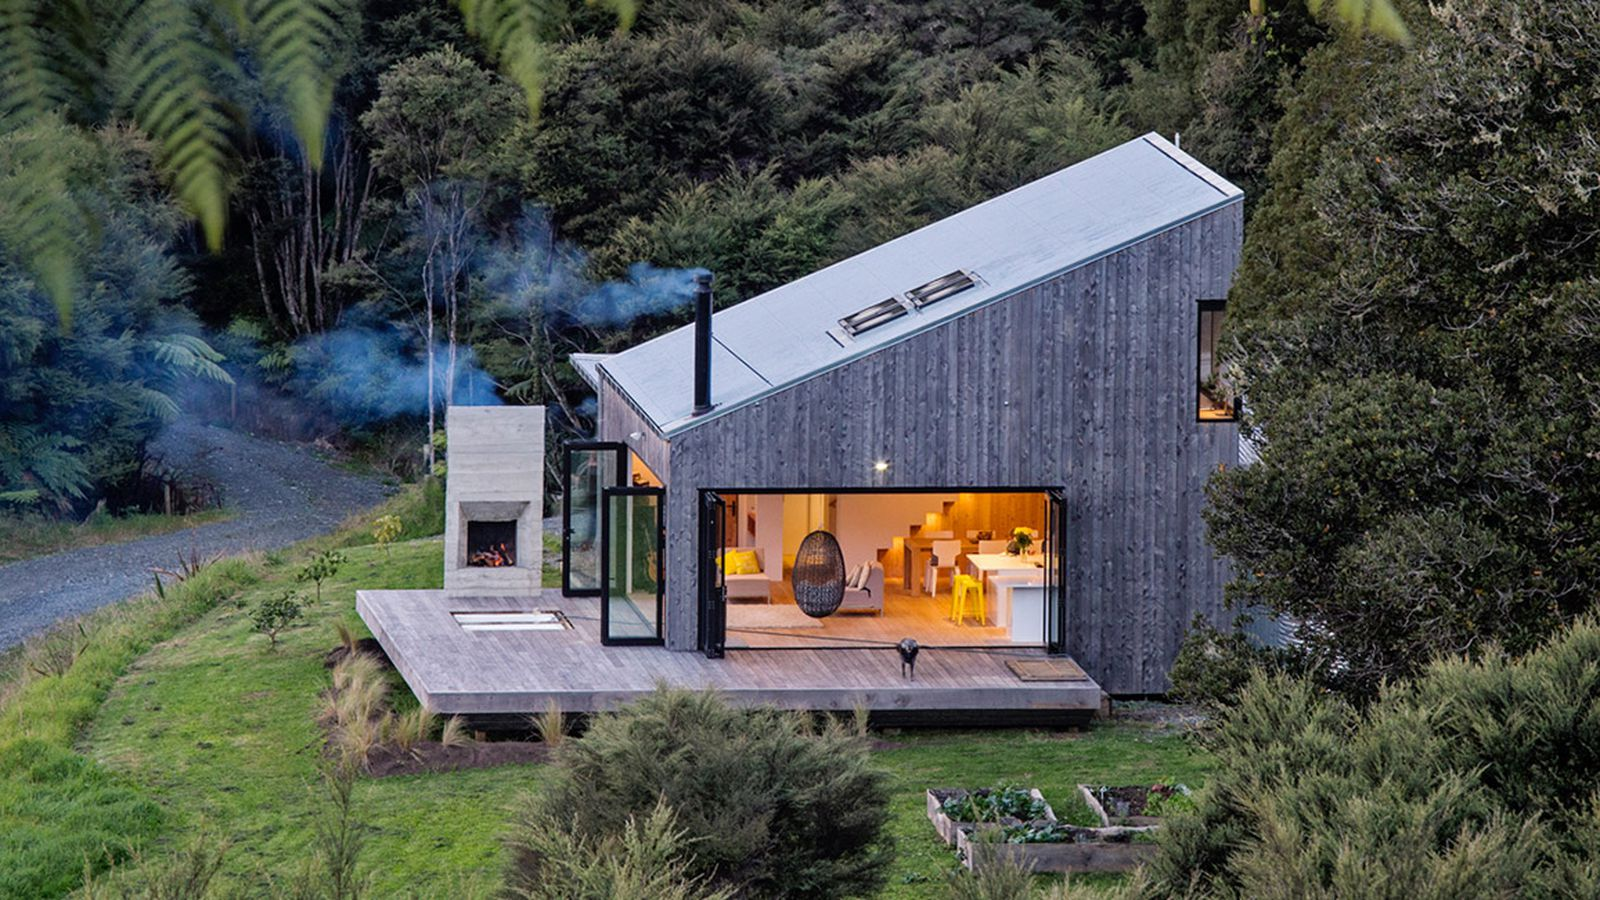 david maurice LTD architectural back country house puhoi new zealand designboom 1800.0 - Get Small House Interior Design Nz  PNG